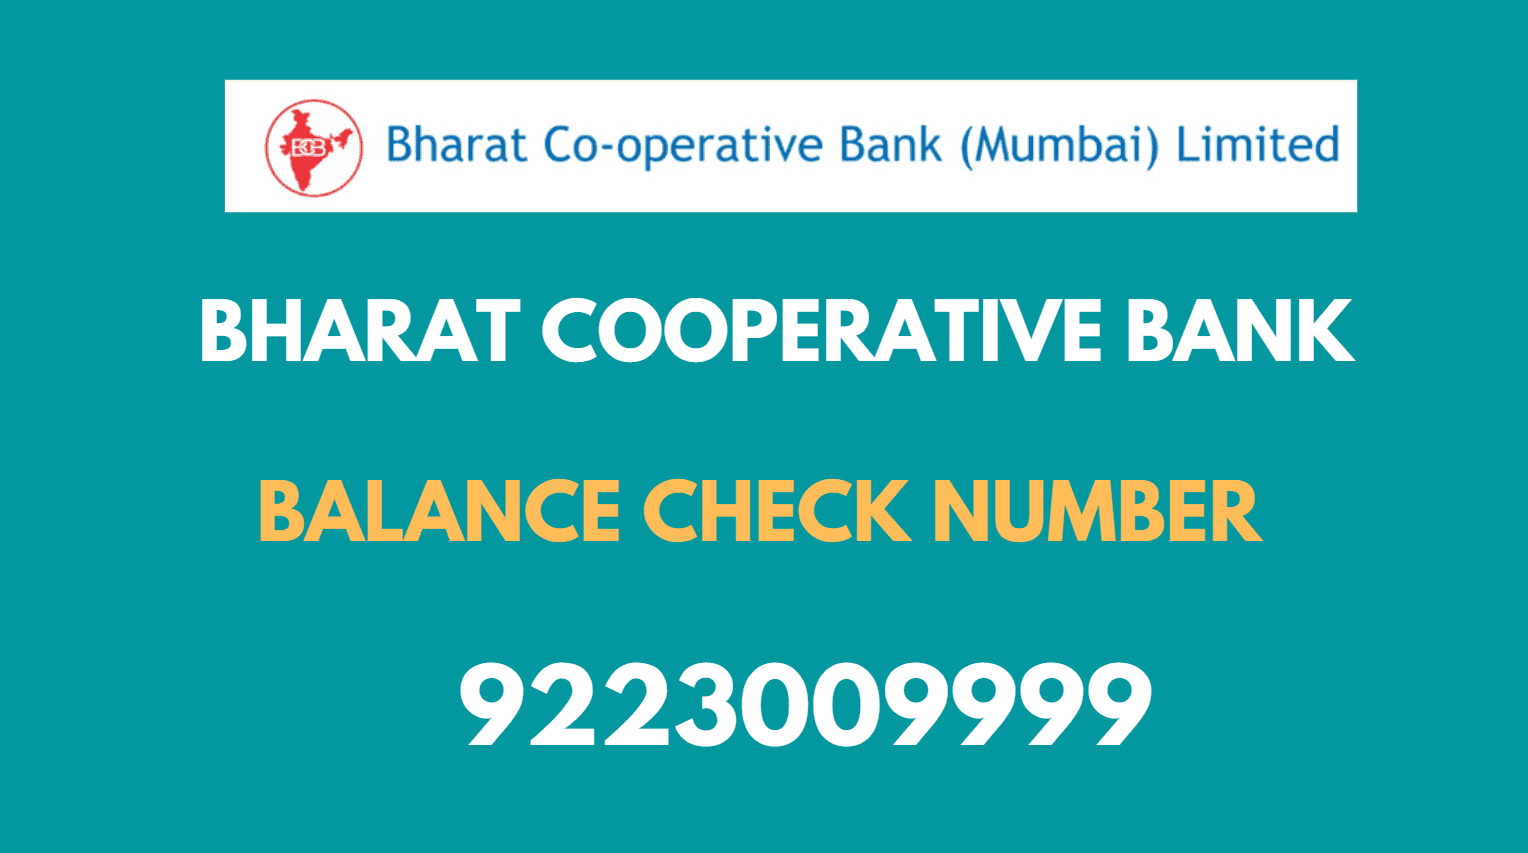 Bharat Cooperative Bank Missed Call Balance Check Number